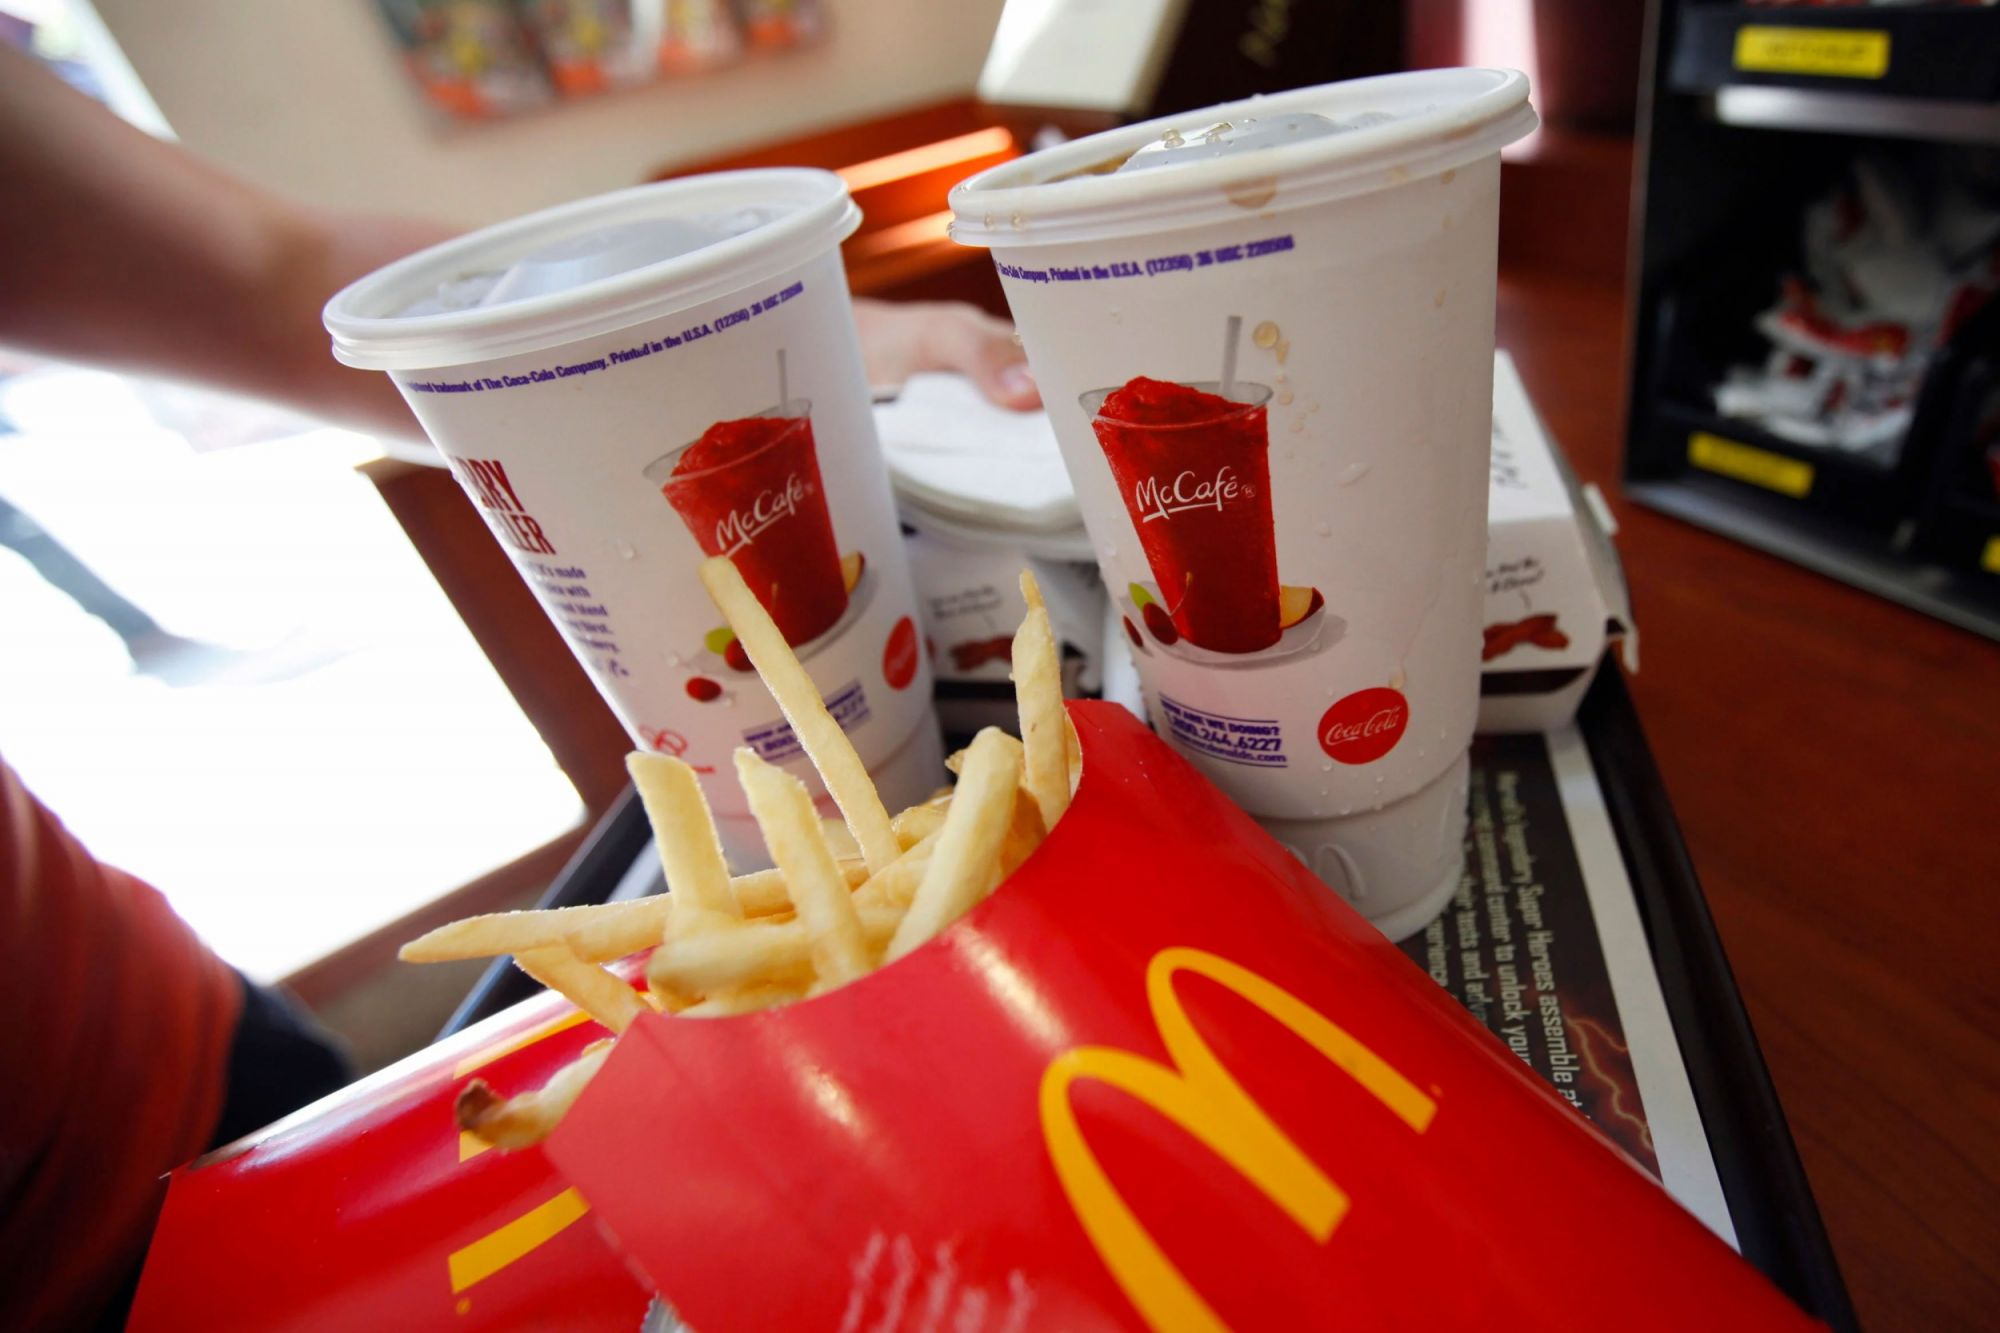 Dozens of Workers Have Filed Sexual Harassment Lawsuits Against McDonald's